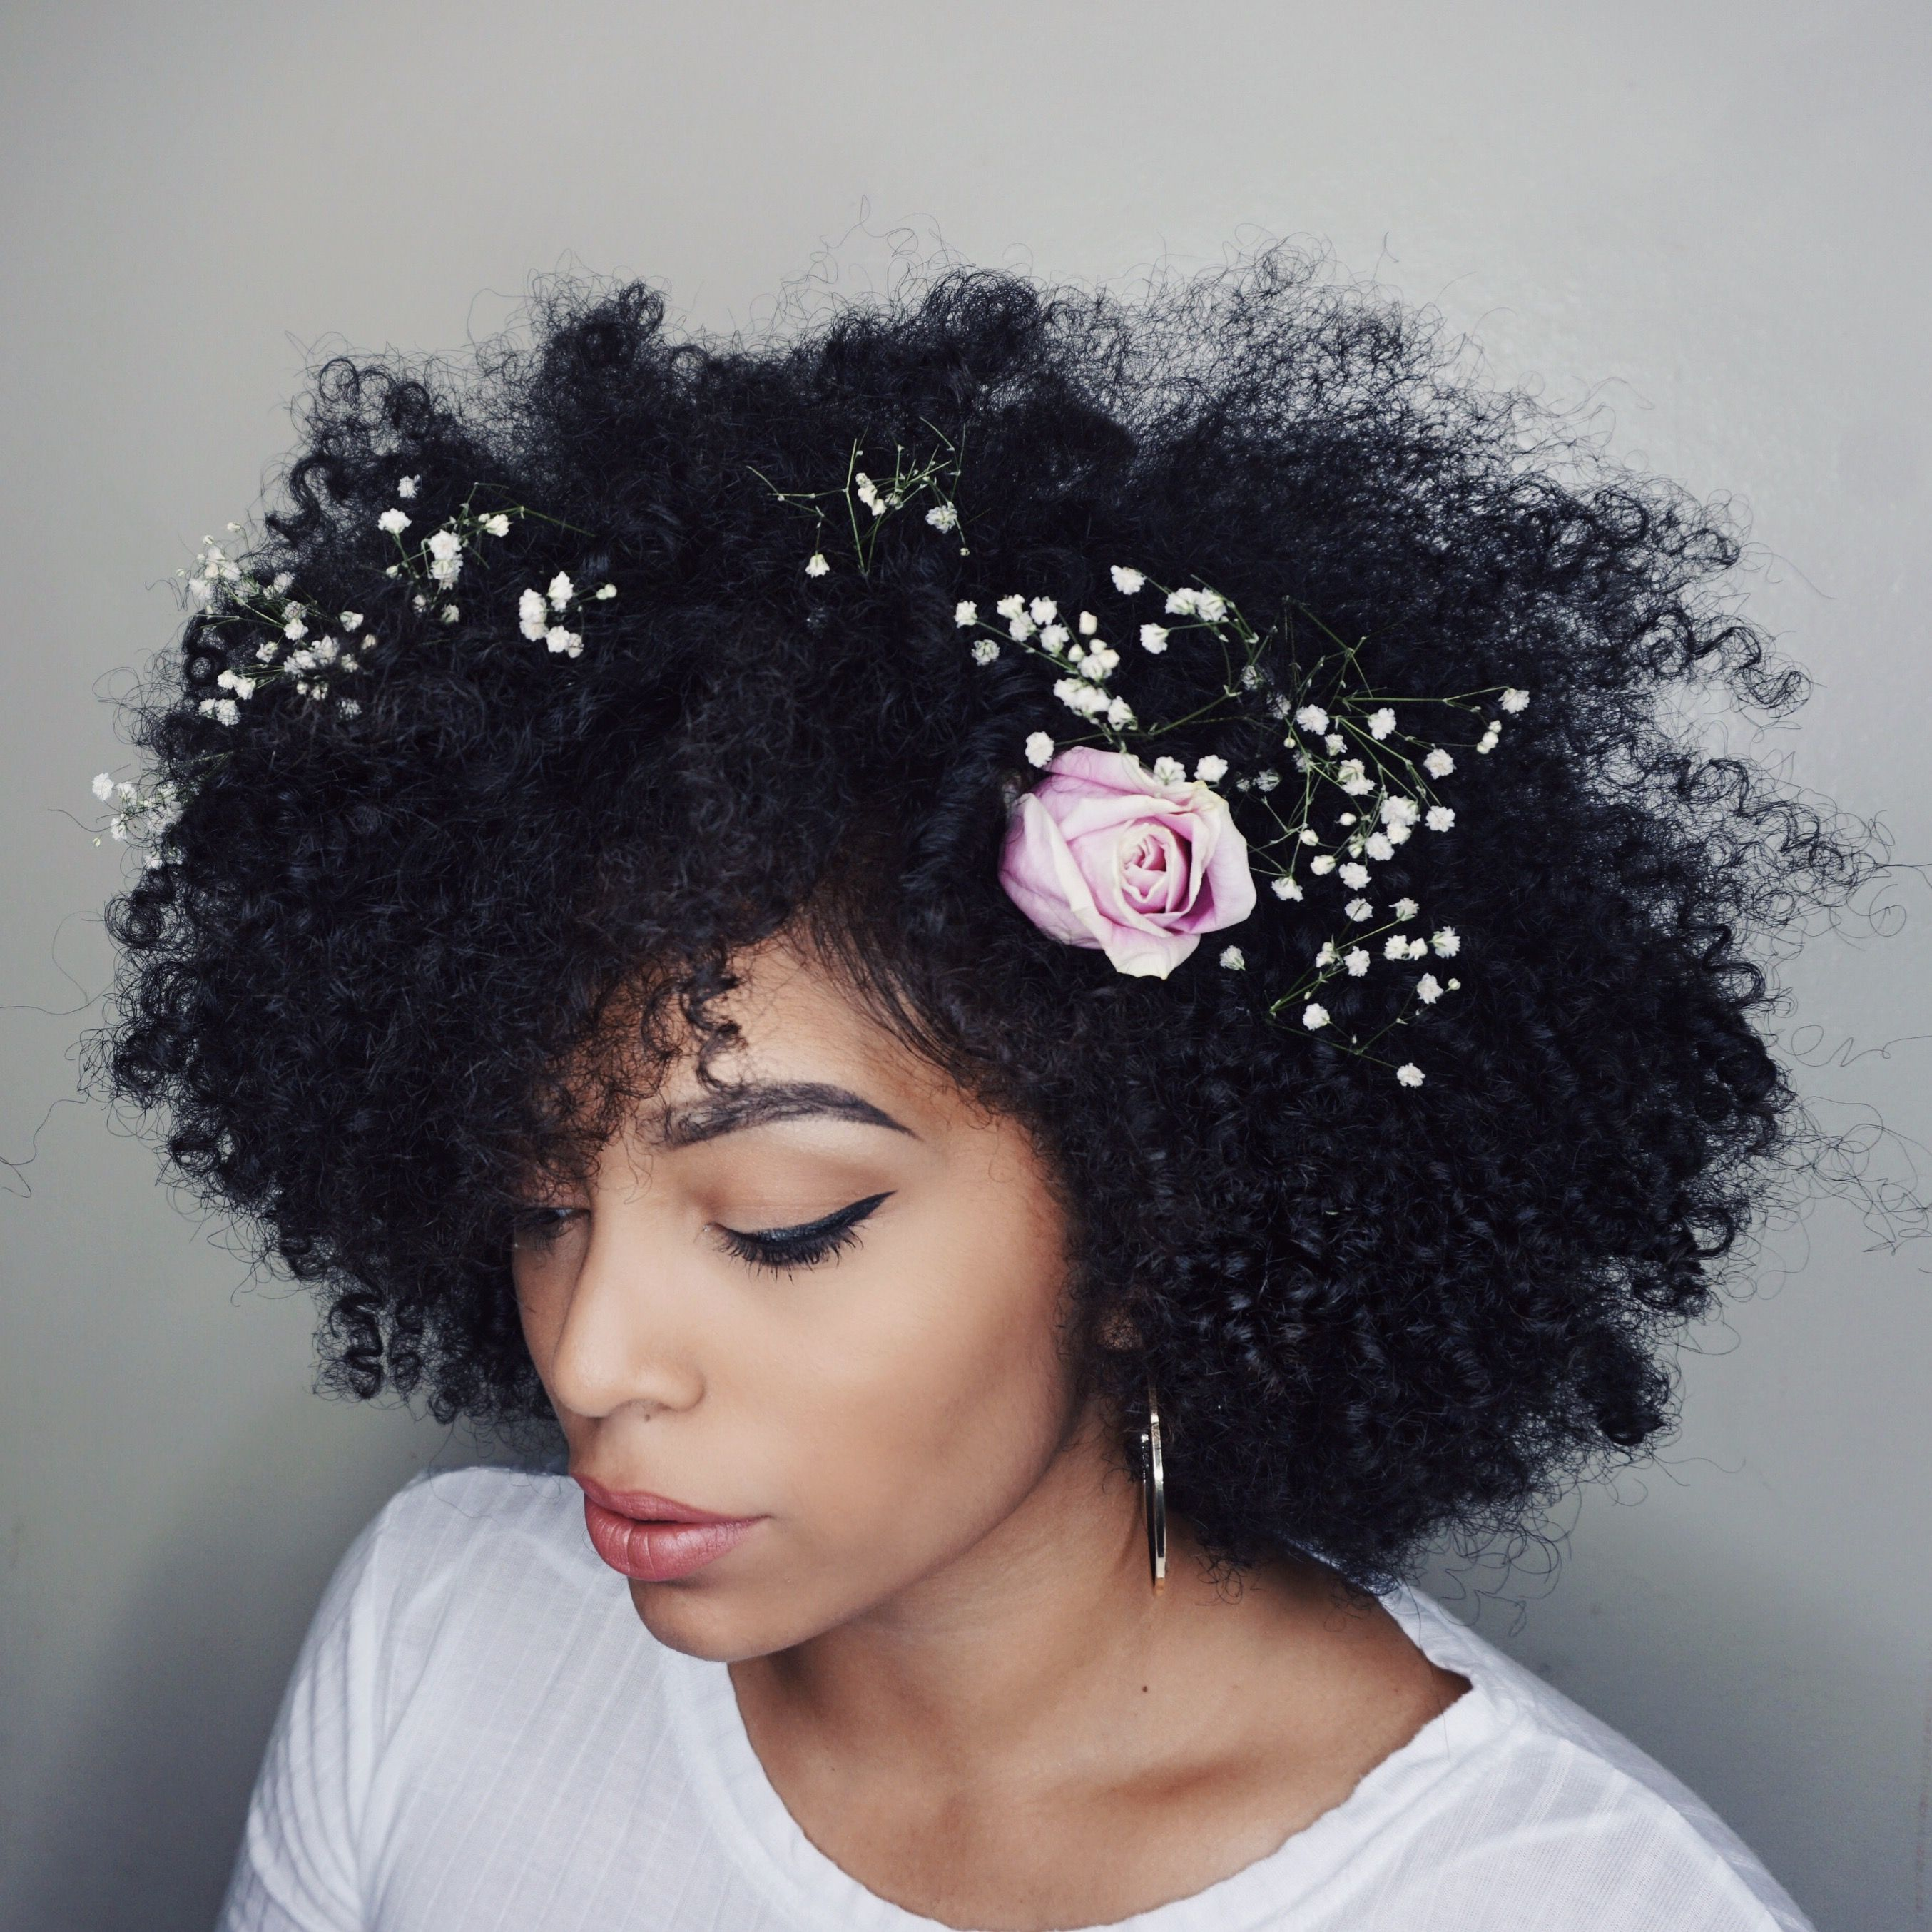 Crowned In My Curls Love This Look For A Special Occasion Like A Wedding Natural Hair Wedding Natural Hair Bride Black Natural Hairstyles